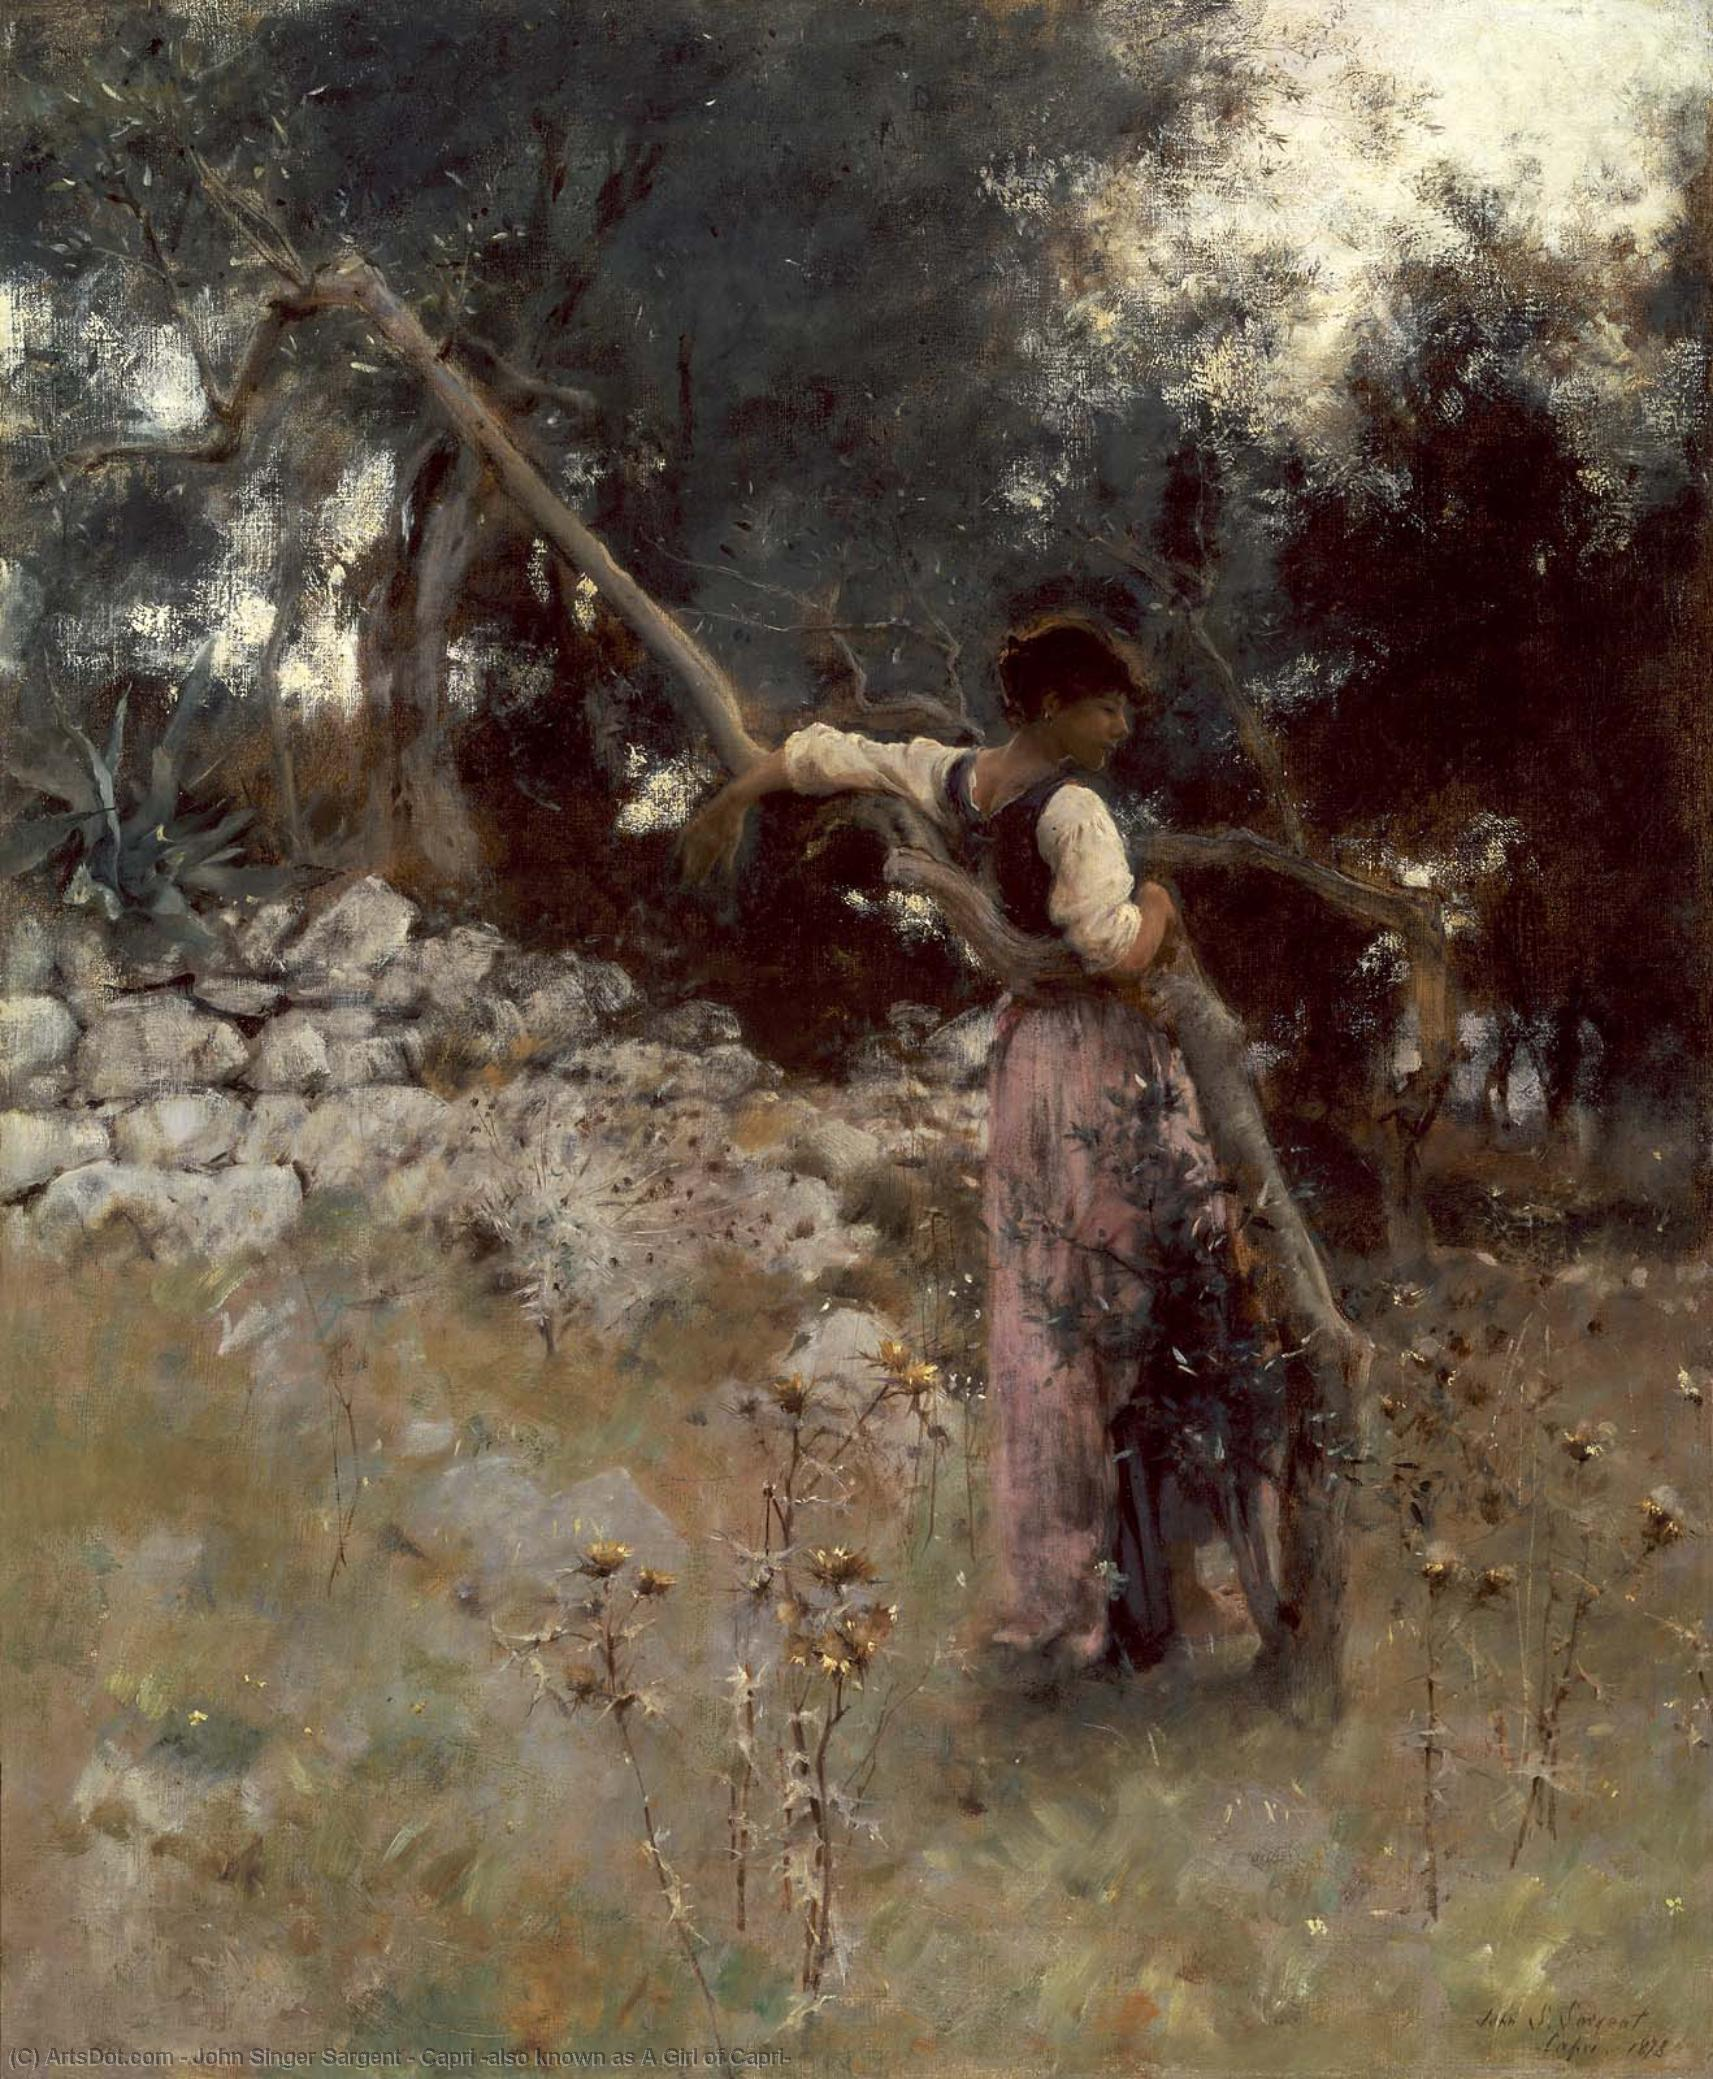 Wikioo.org - The Encyclopedia of Fine Arts - Painting, Artwork by John Singer Sargent - Capri (also known as A Girl of Capri)